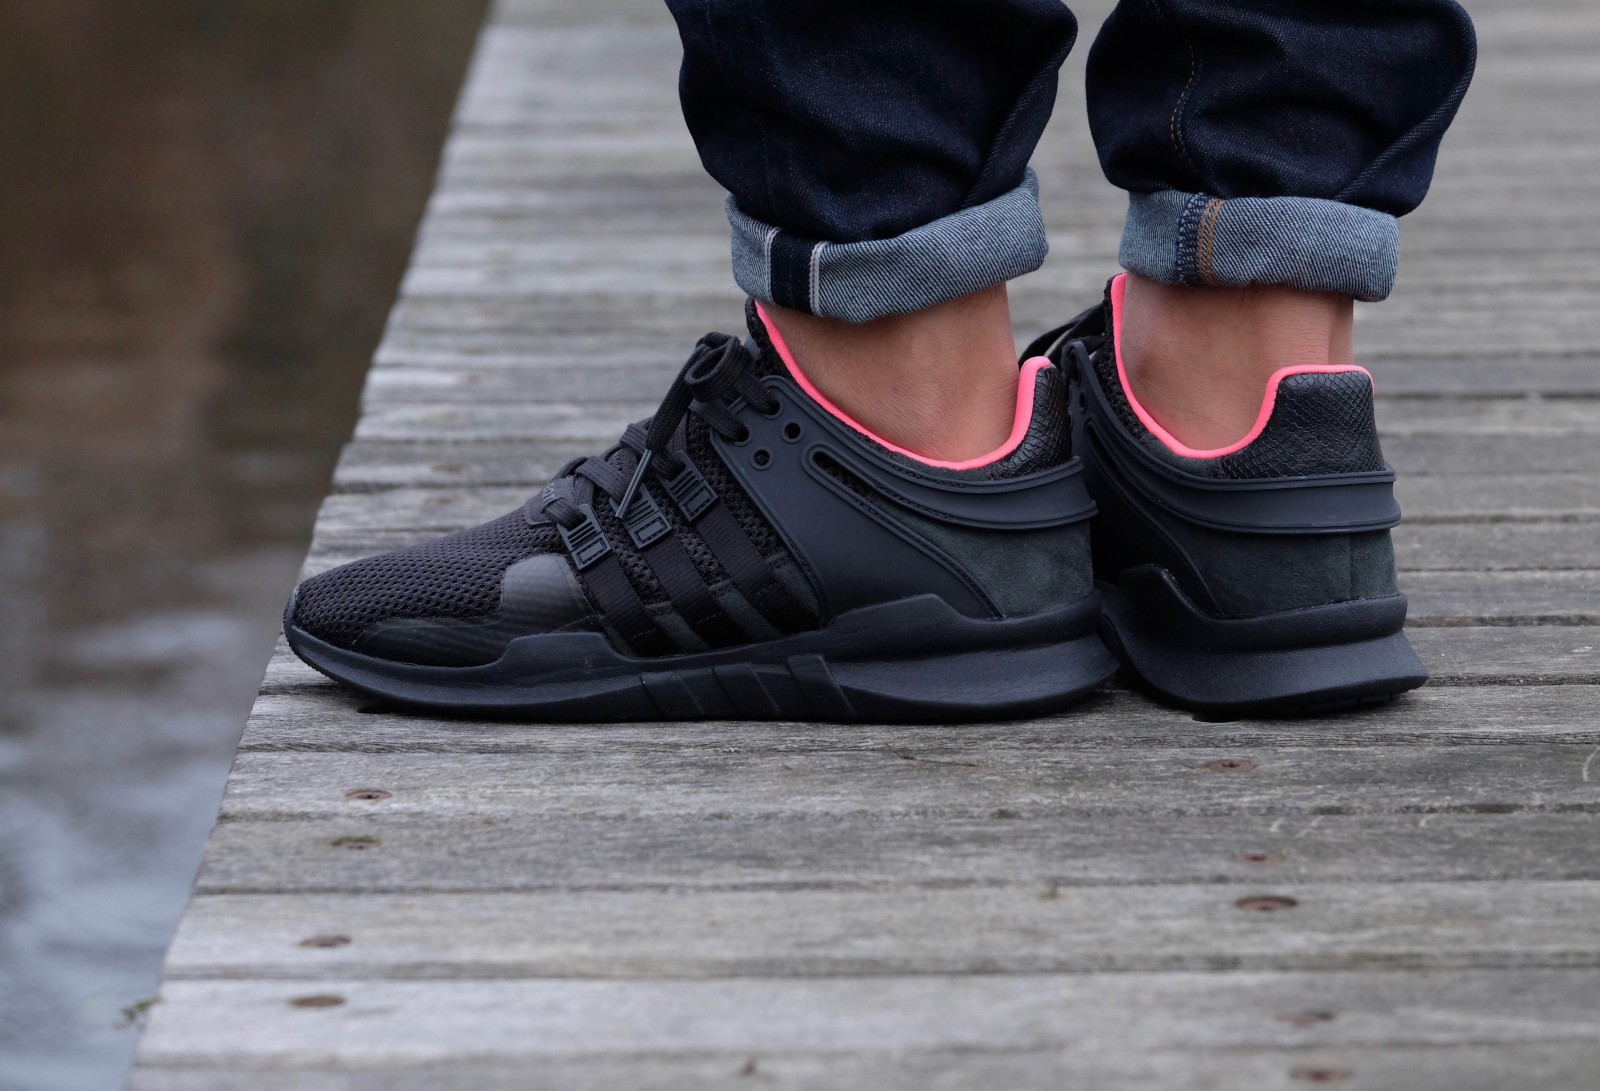 More Images Of The adidas EQT Support Ultra PK Core Black